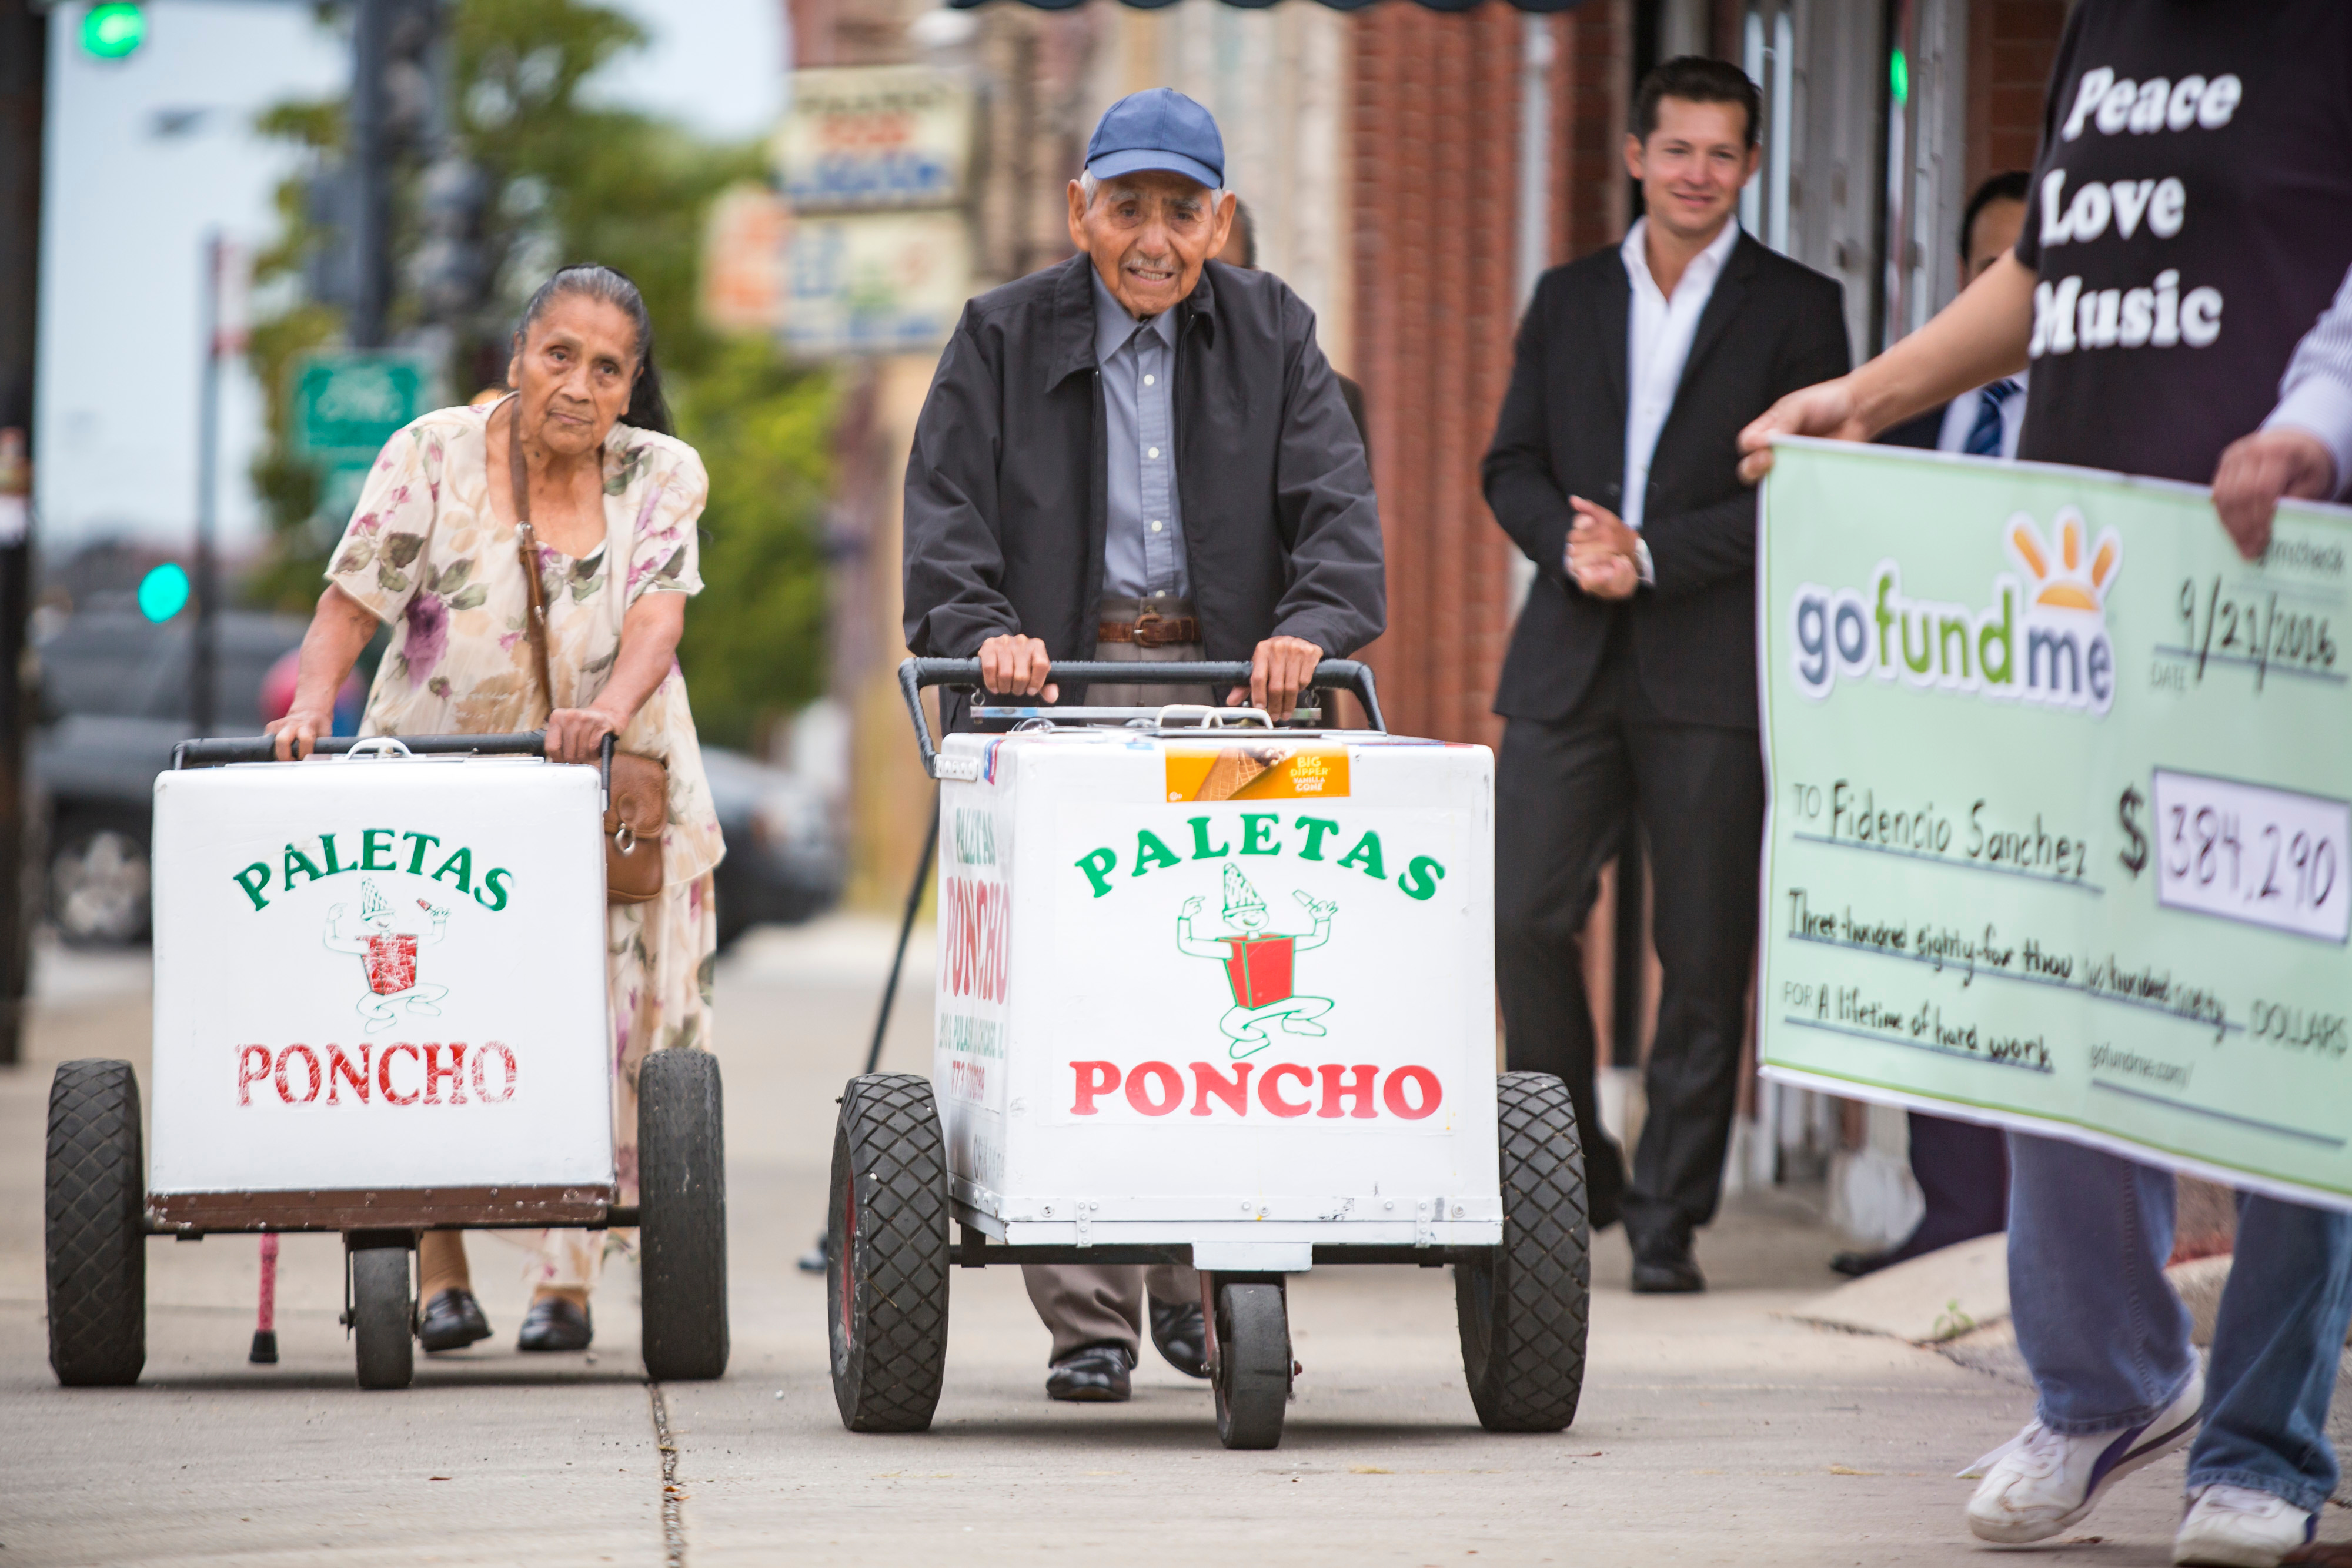 Fidencio Sanchez, center, with his wife Eleatia, at a ceremony to accept a check for $384,290 raised through a GoFundMe campaign in 2016.